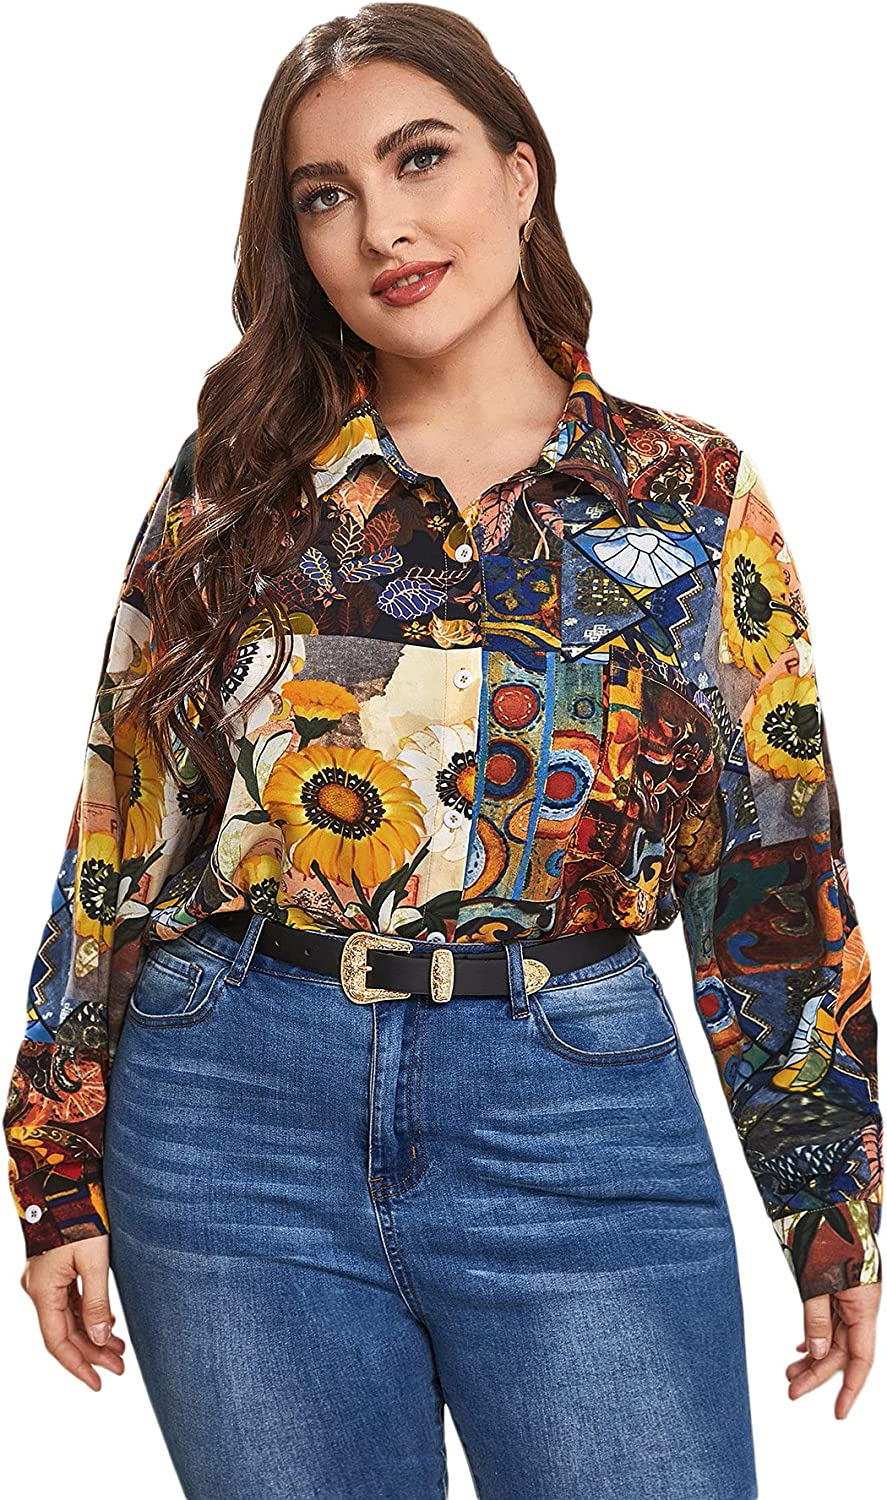 SOLY HUX Women's Plus Size Long Sleeve Notched Neck Chain Print Work Blouse Top